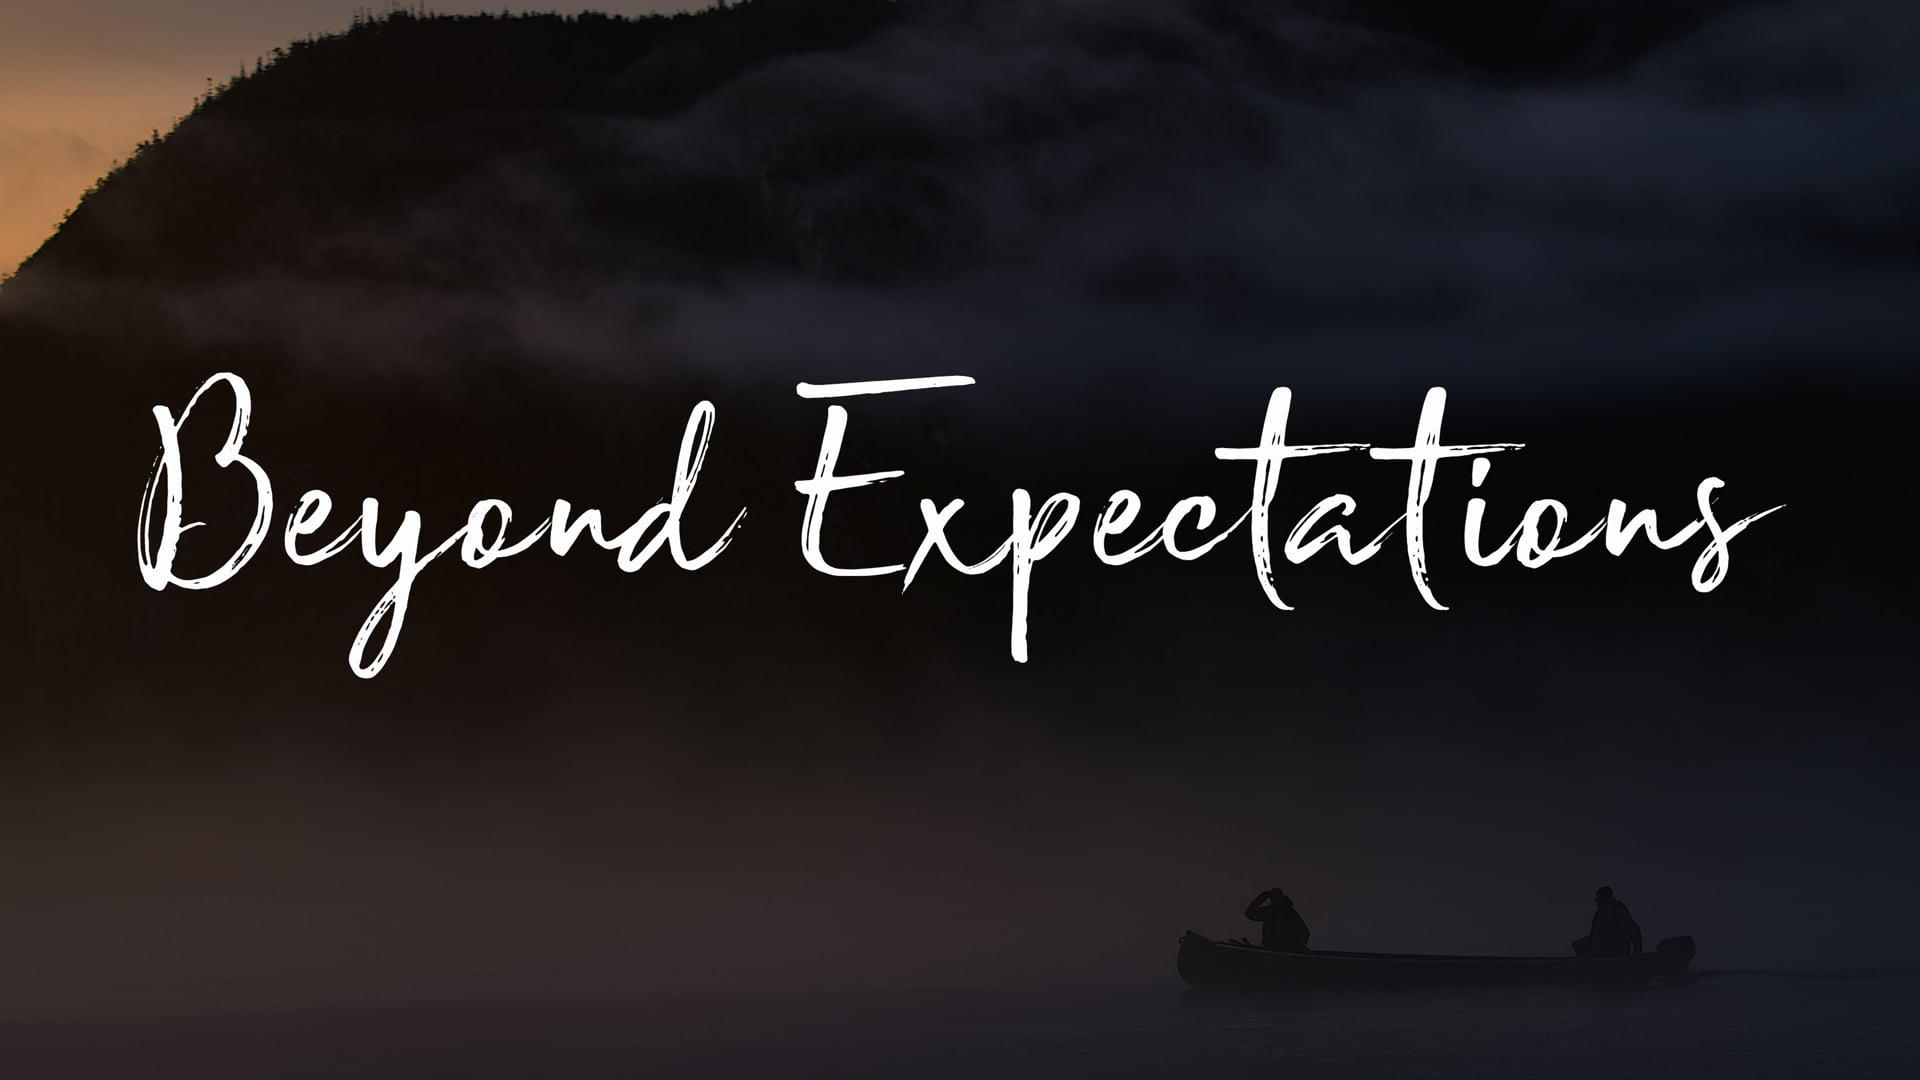 Beyond Expectations